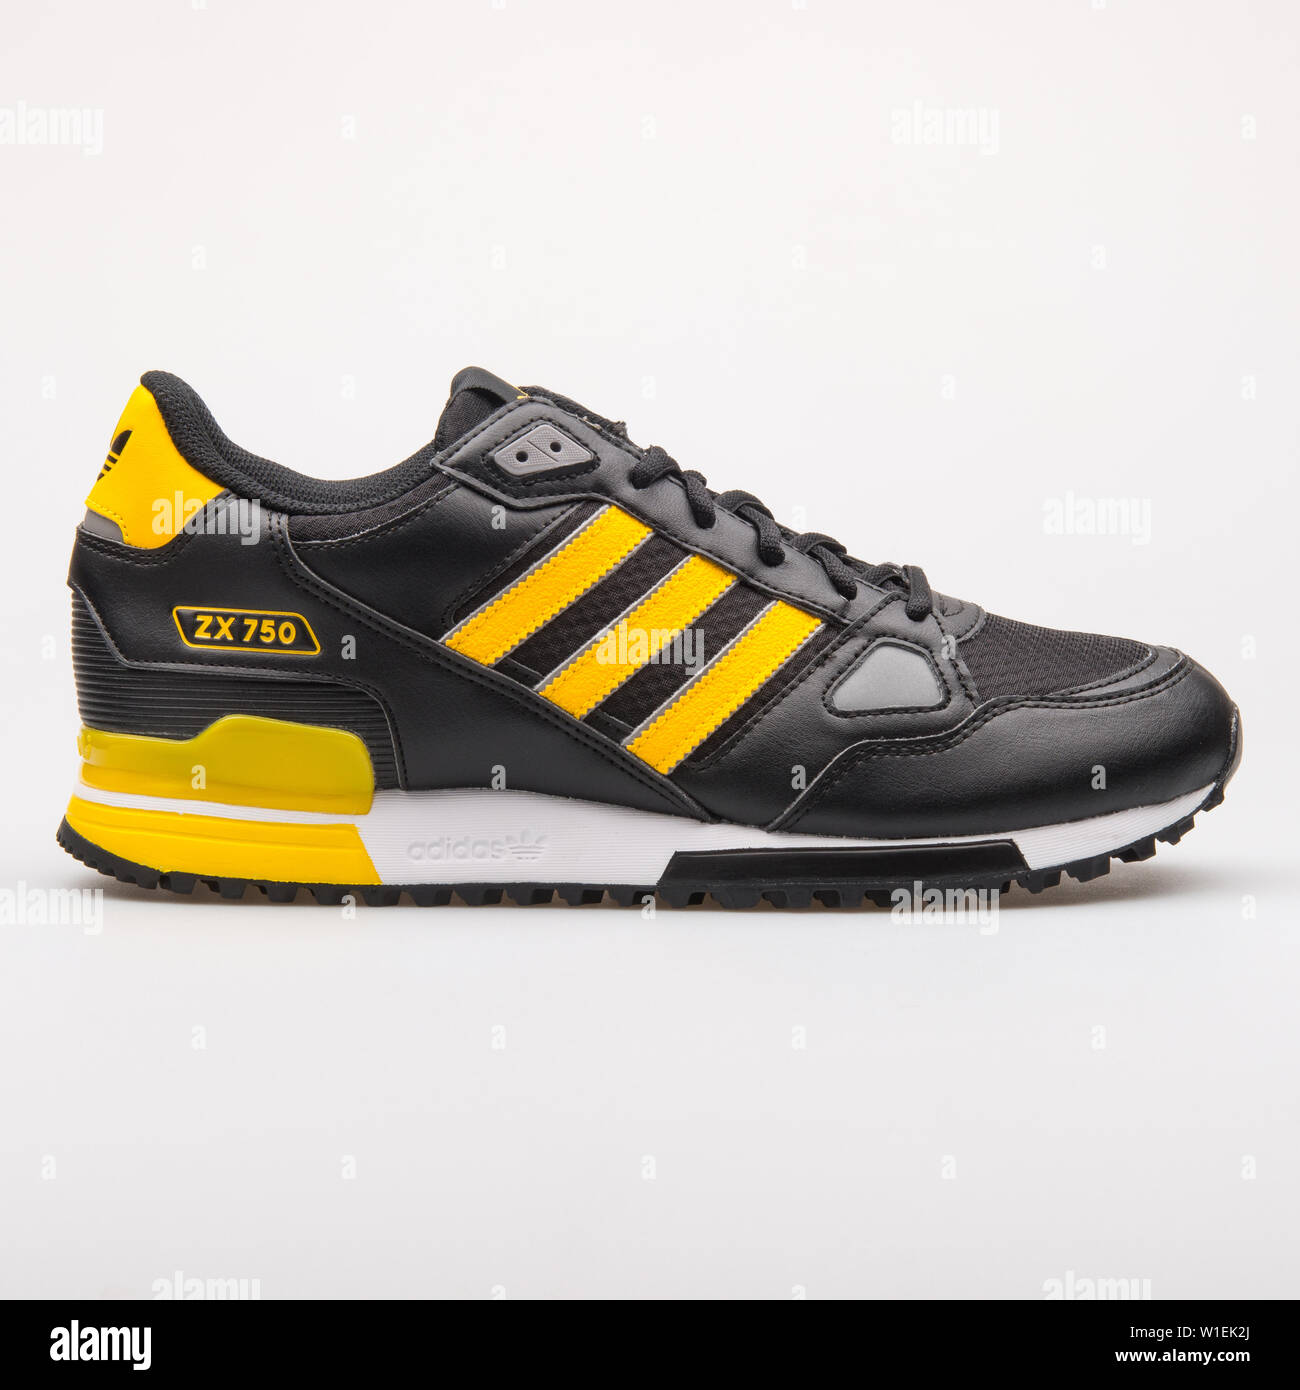 competitive price b7787 cc8f9 VIENNA, AUSTRIA - AUGUST 23, 2017: Adidas ZX 750 black and ...